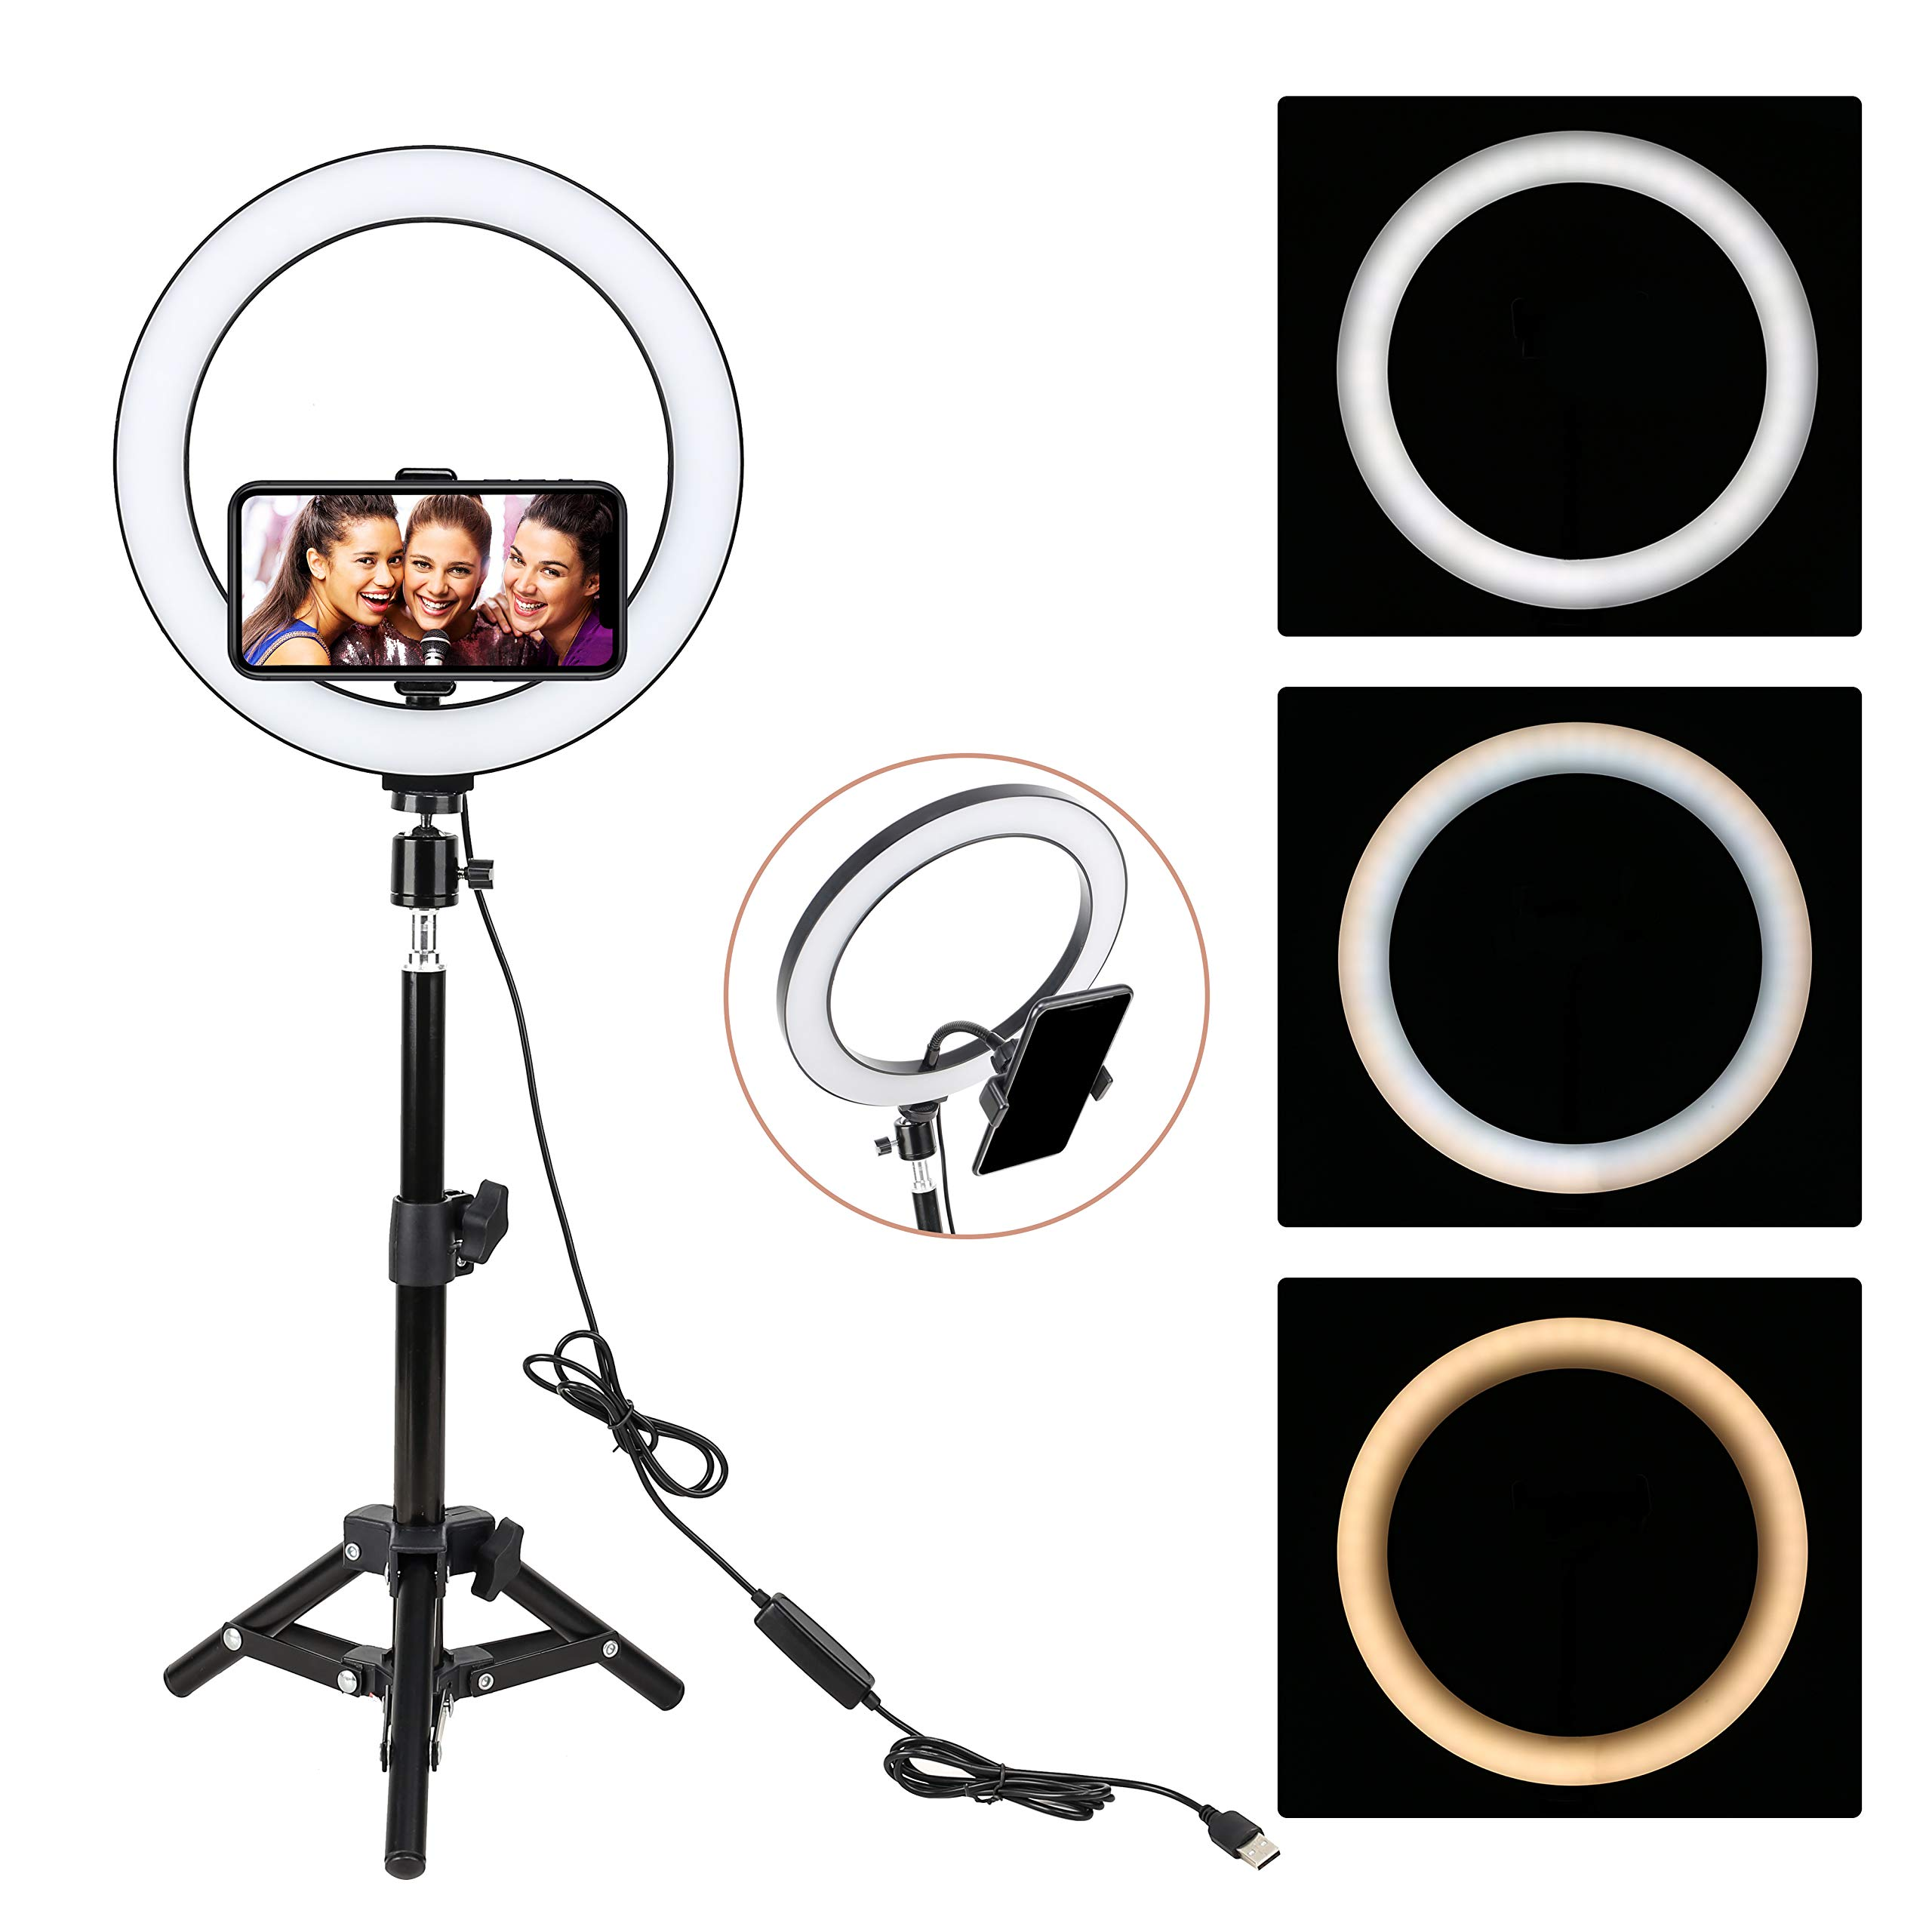 ZoMei 10'' Selfie LED Ring Light with Tripod Stand &Cell Phone Holder for Live Stream/Makeup/YouTube Video,Dimmable Beauty Mini Camera Photography Ringlight for iPhone Xs Max XR Android by ZoMei